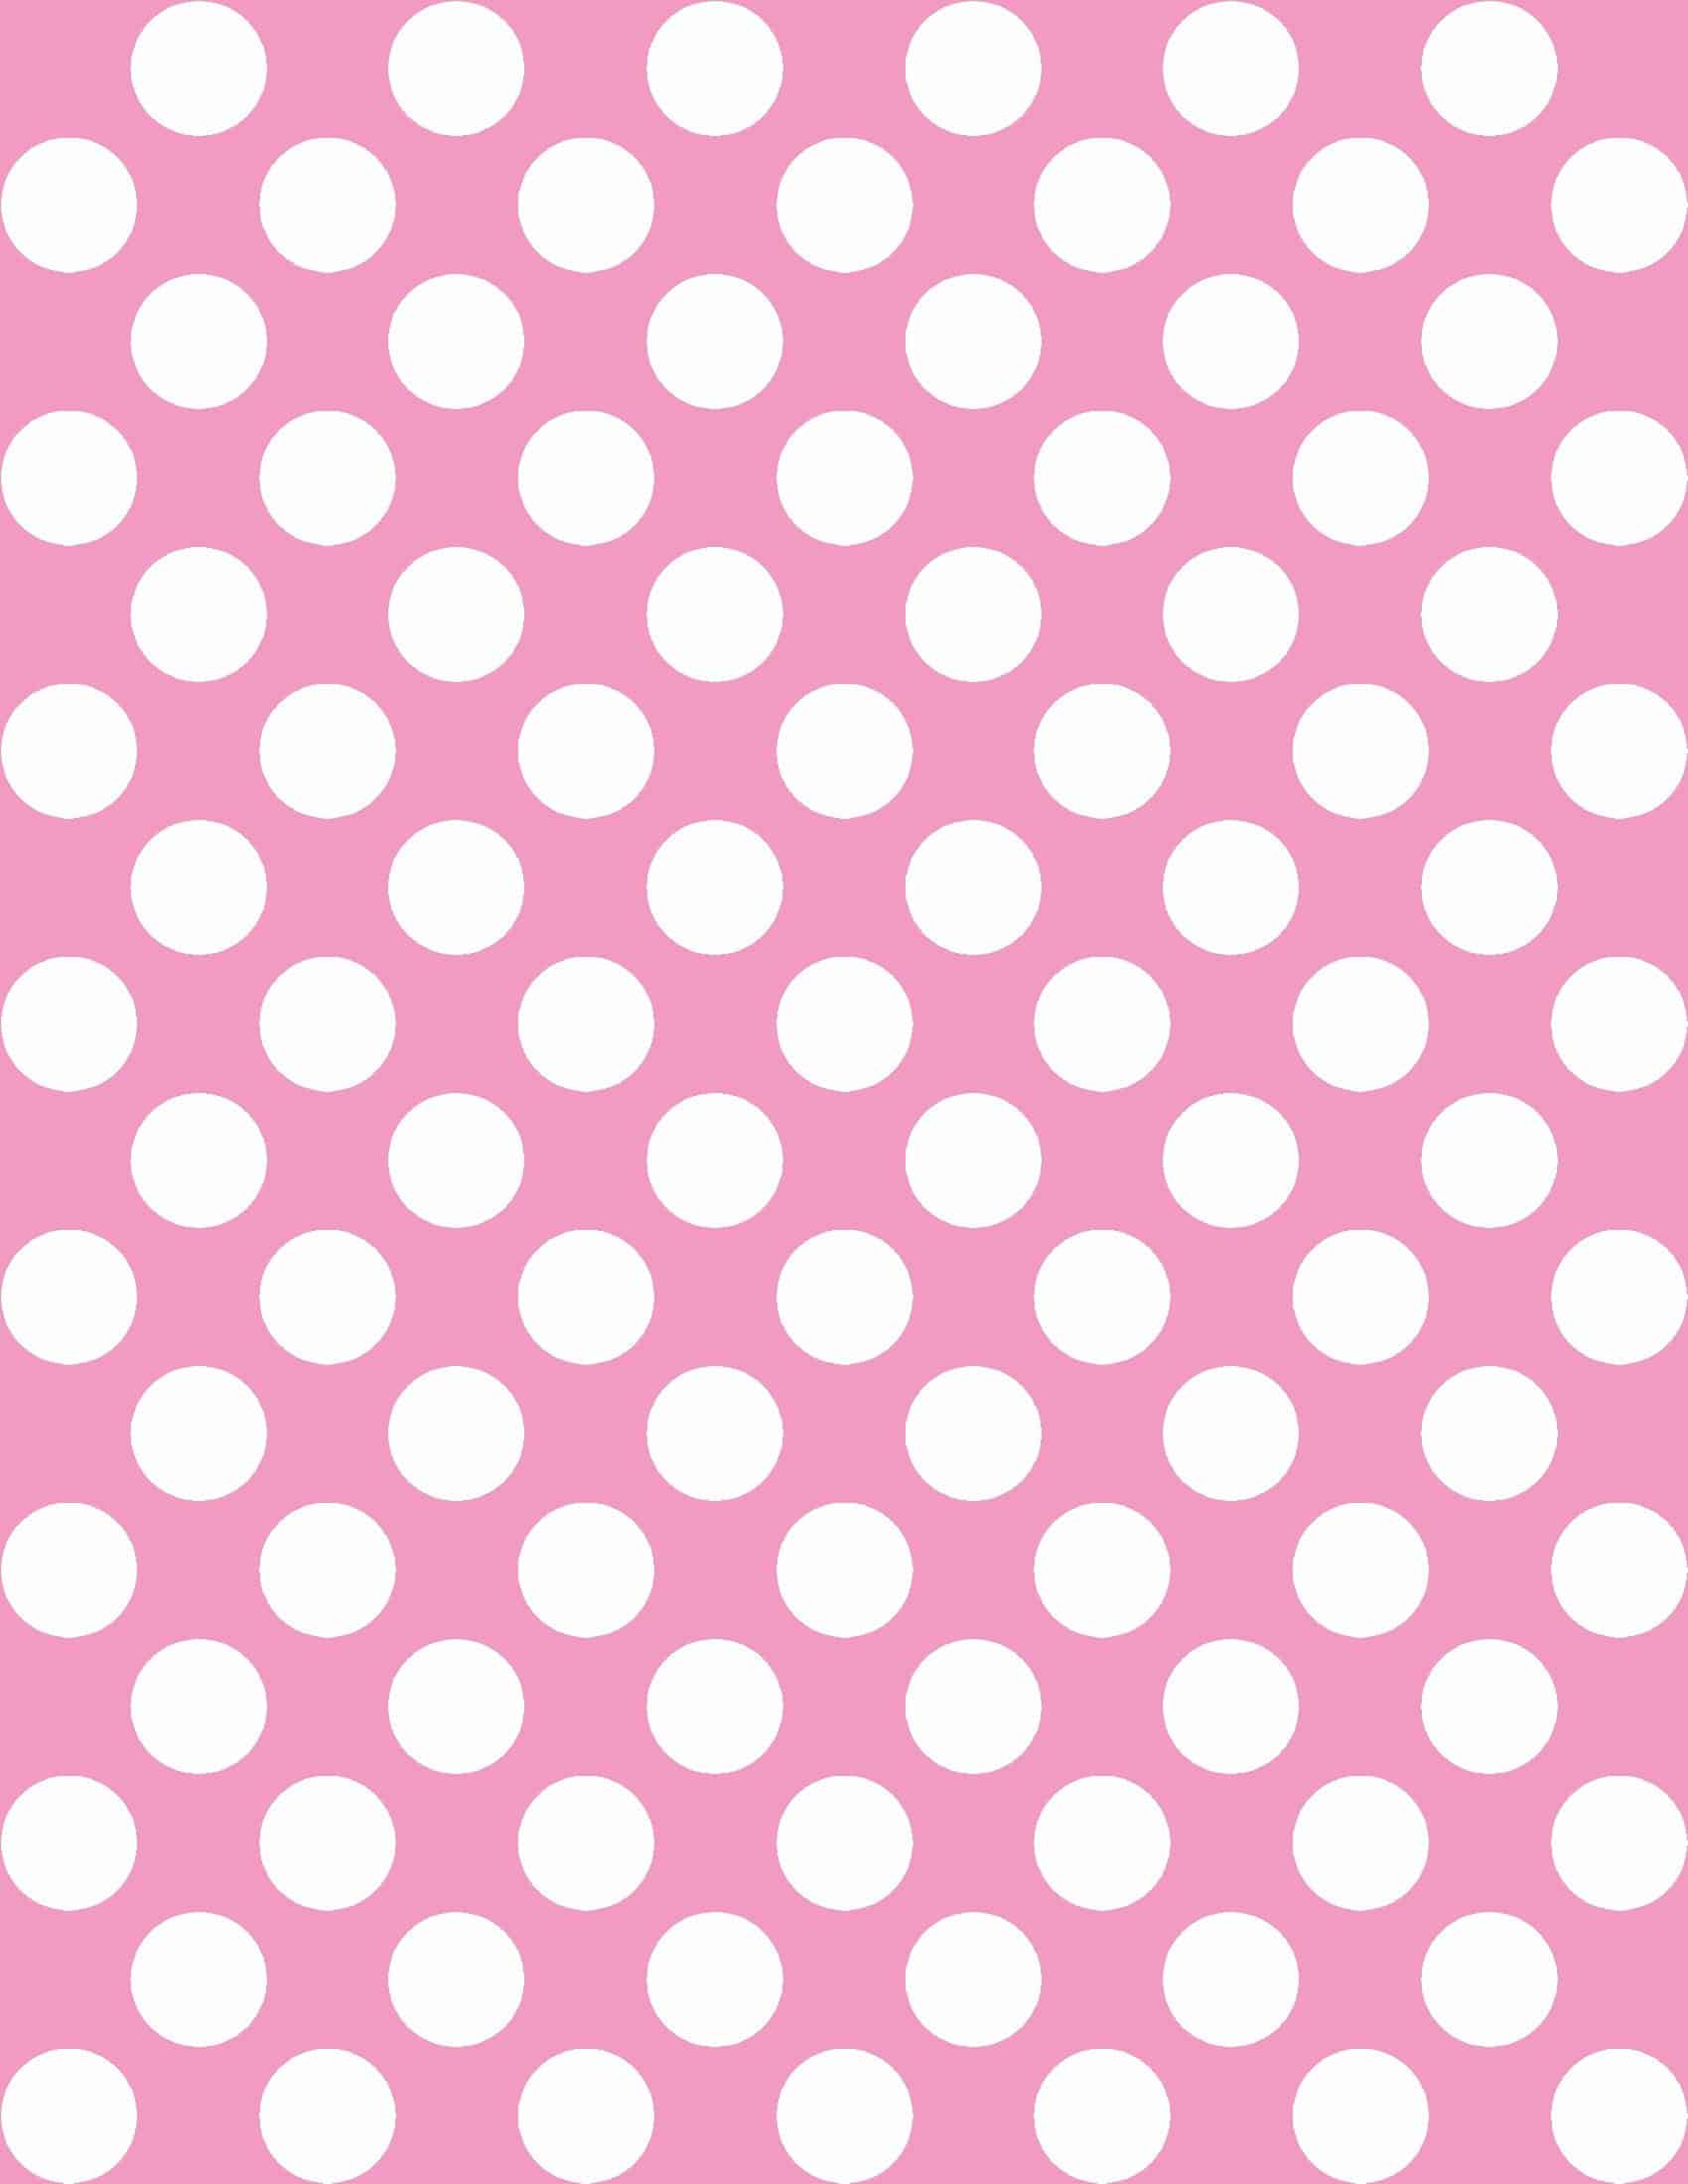 Free Polka Dot Background In Any Color Instant Download